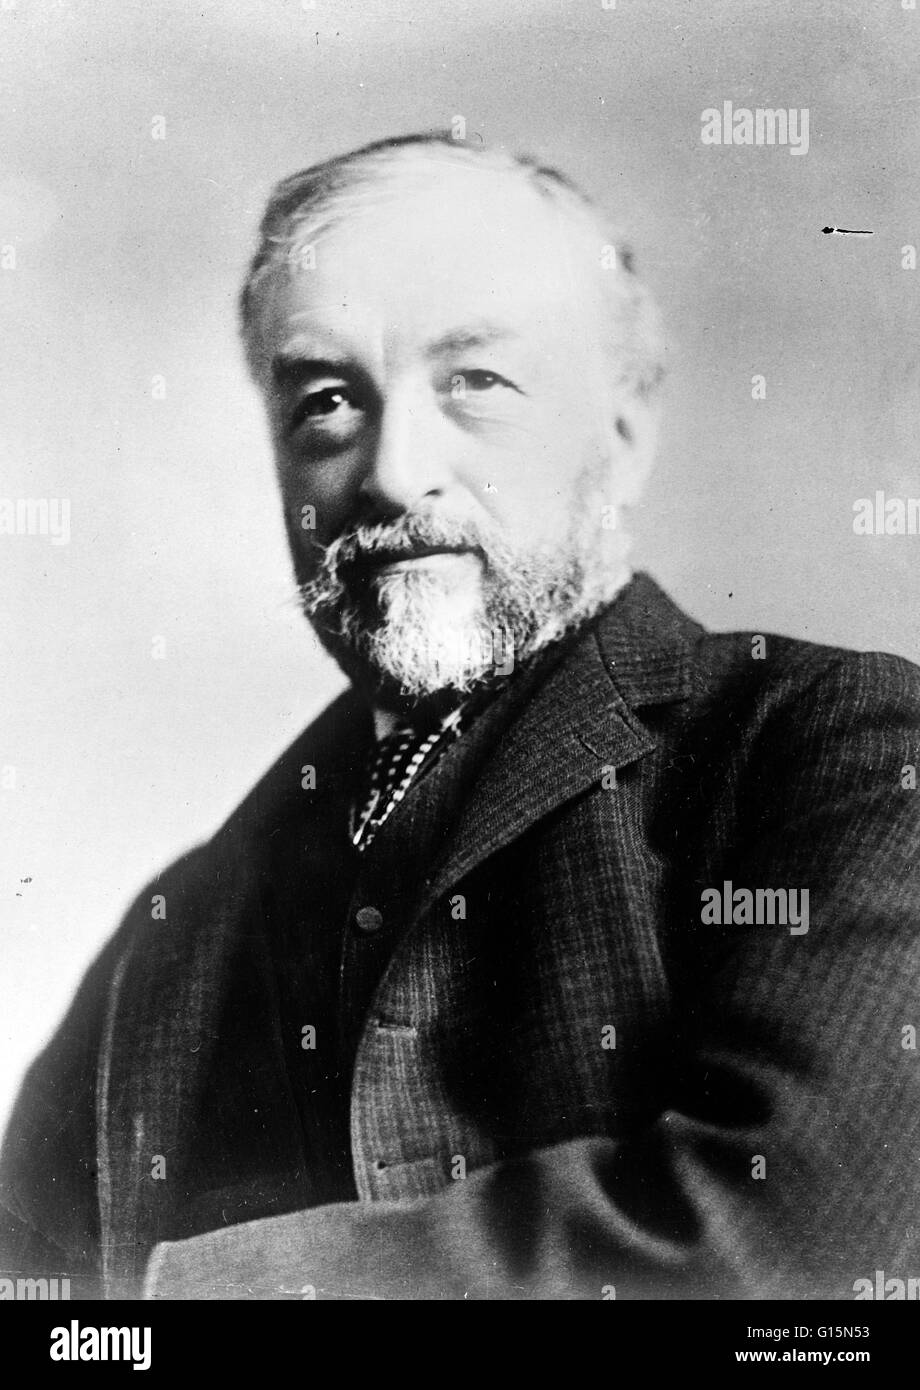 Samuel Pierpont Langley (August 22, 1834 - February 27, 1906) was an American astronomer, physicist, inventor of - Stock Image